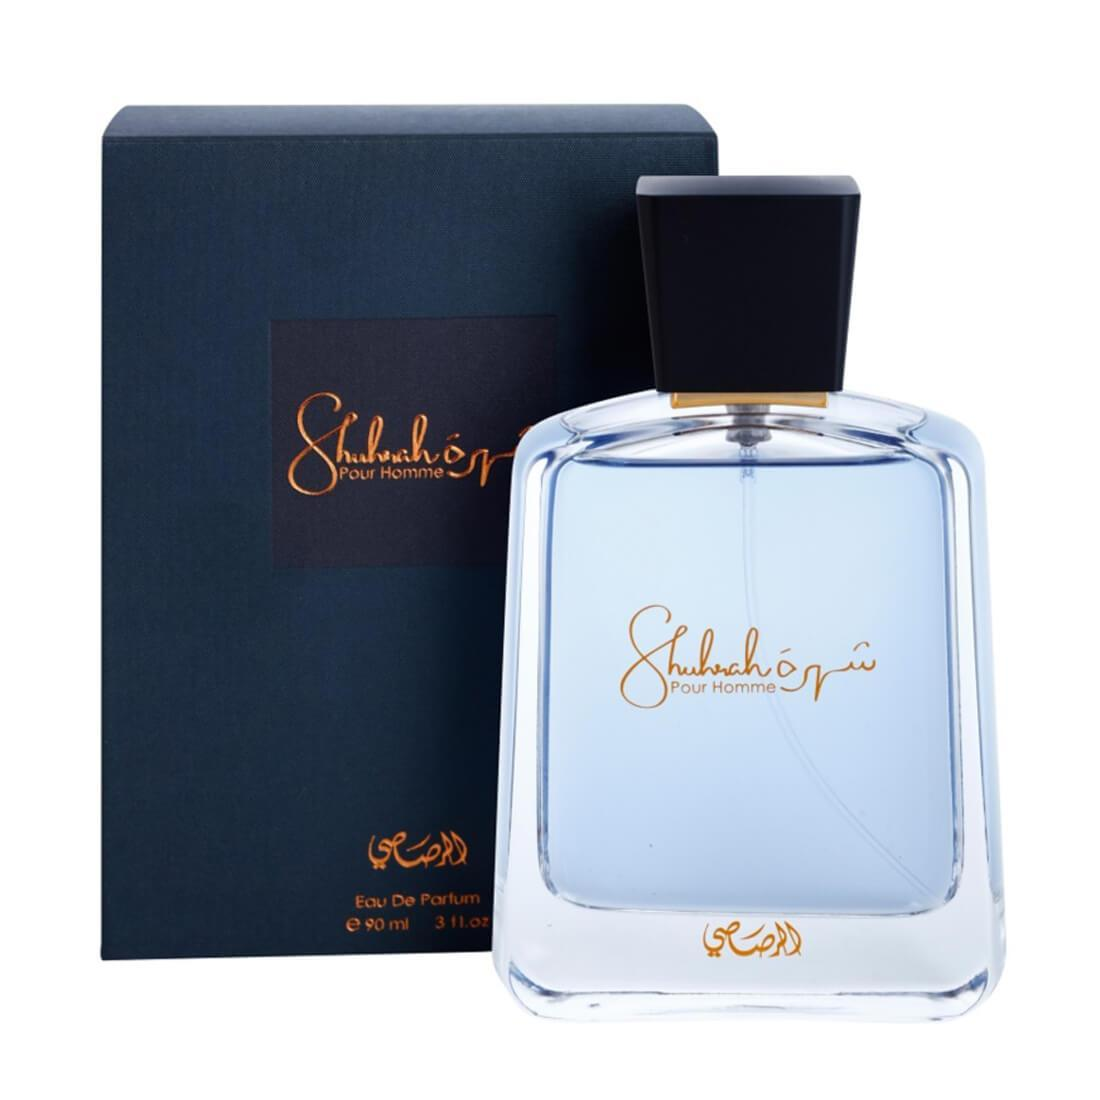 Rasasi Shuhrah Men Perfume - 90ml